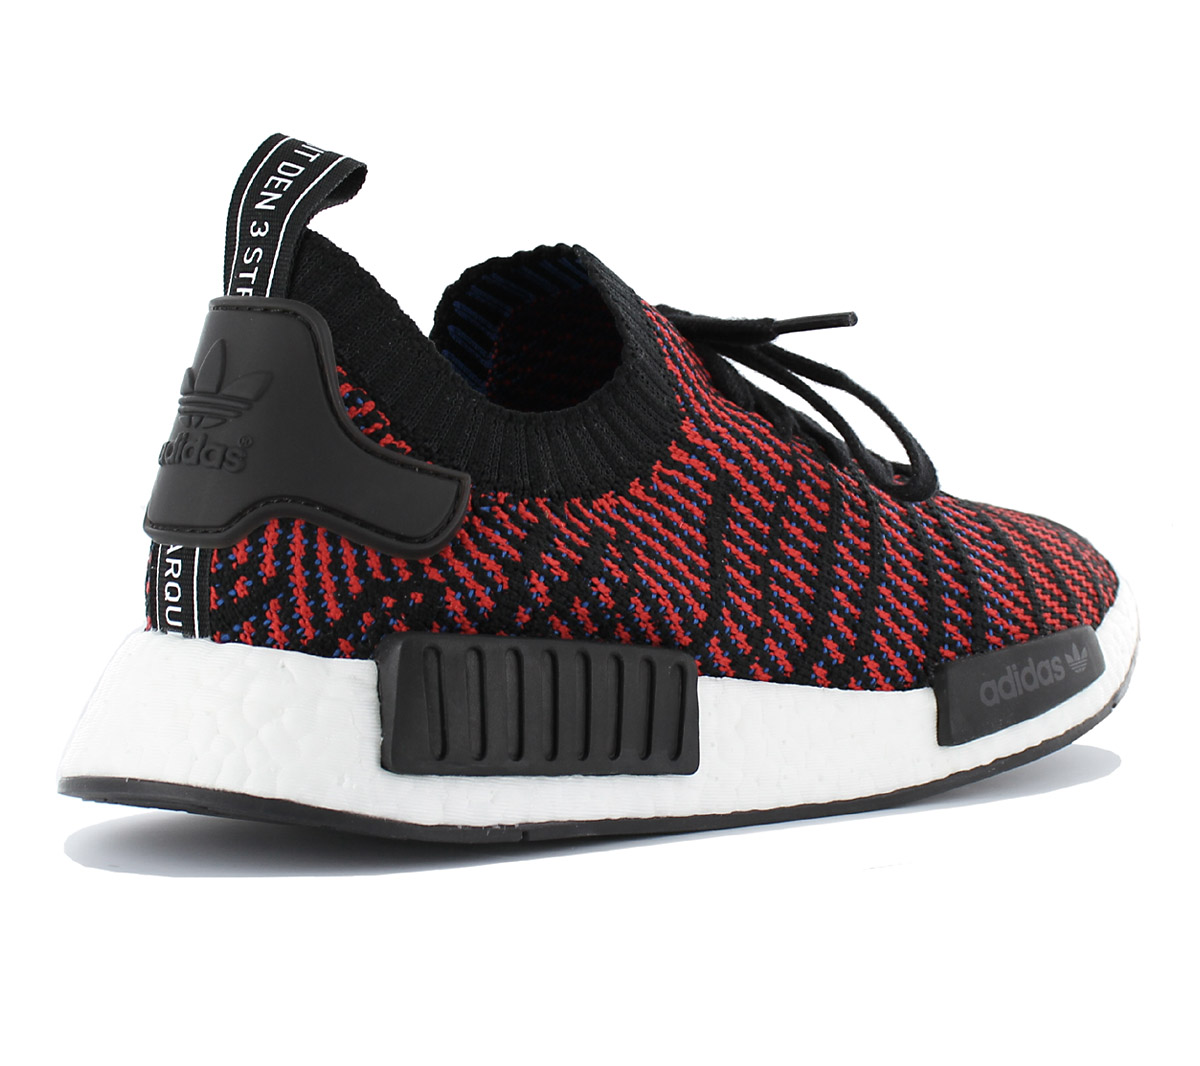 R1 Shoes New Stlt Adidas Nmd Cq2385 About Pk Trainers Stealth Details Primeknit dCoQrxBeW